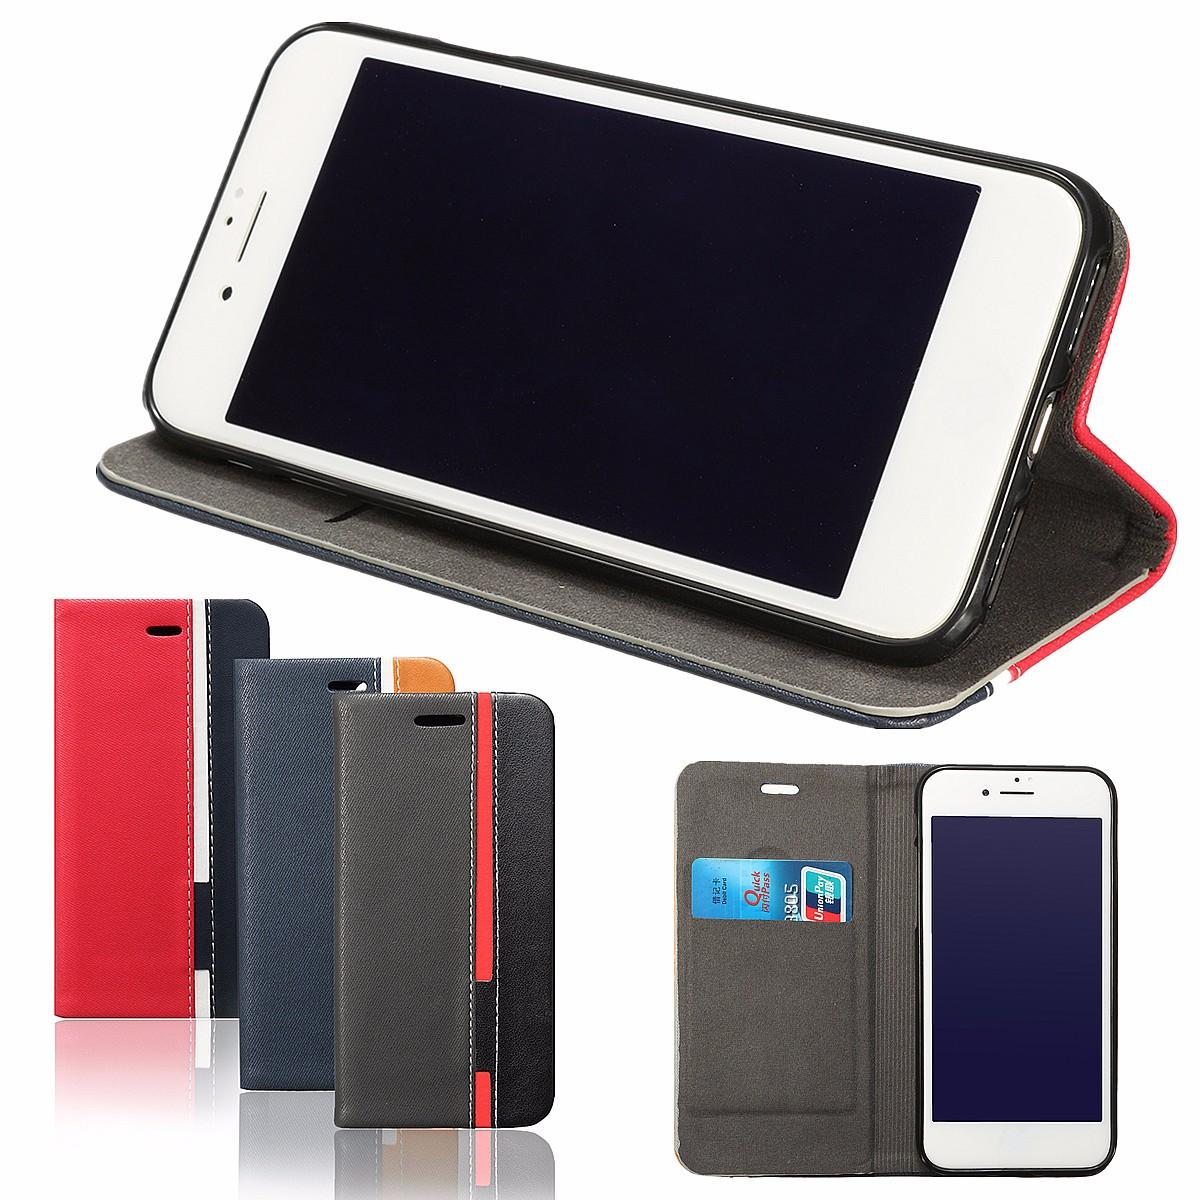 Multi-colors Flip Card Slots Soft PU Leather Stand Holder Cover Case for iPhone 7 4.7 Inch